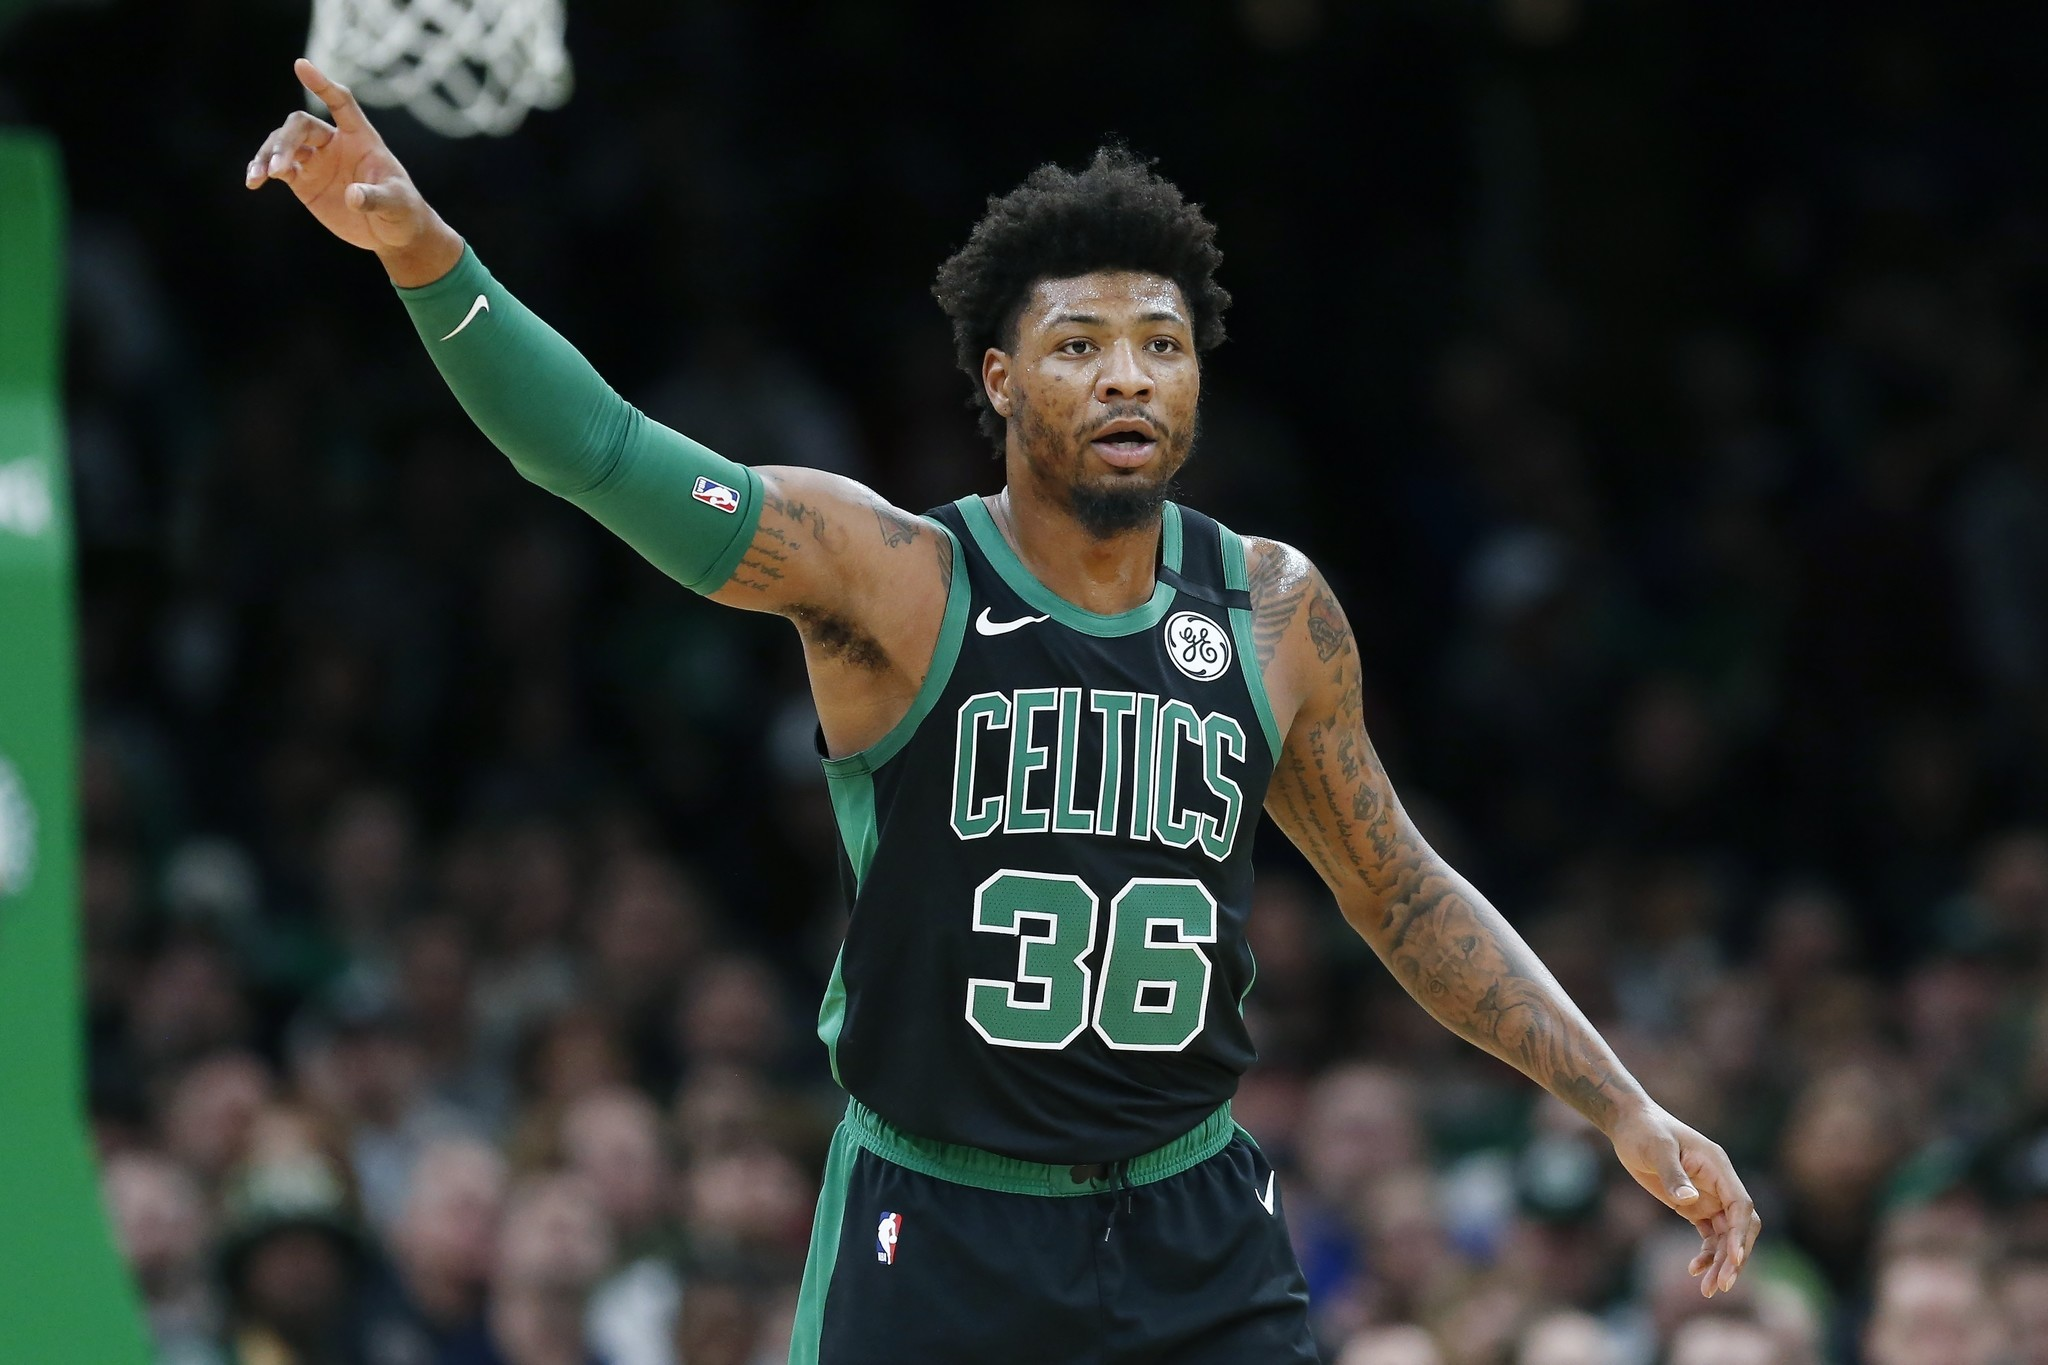 Boston Celtics guard Marcus Smart cleared after testing positive for coronavirus